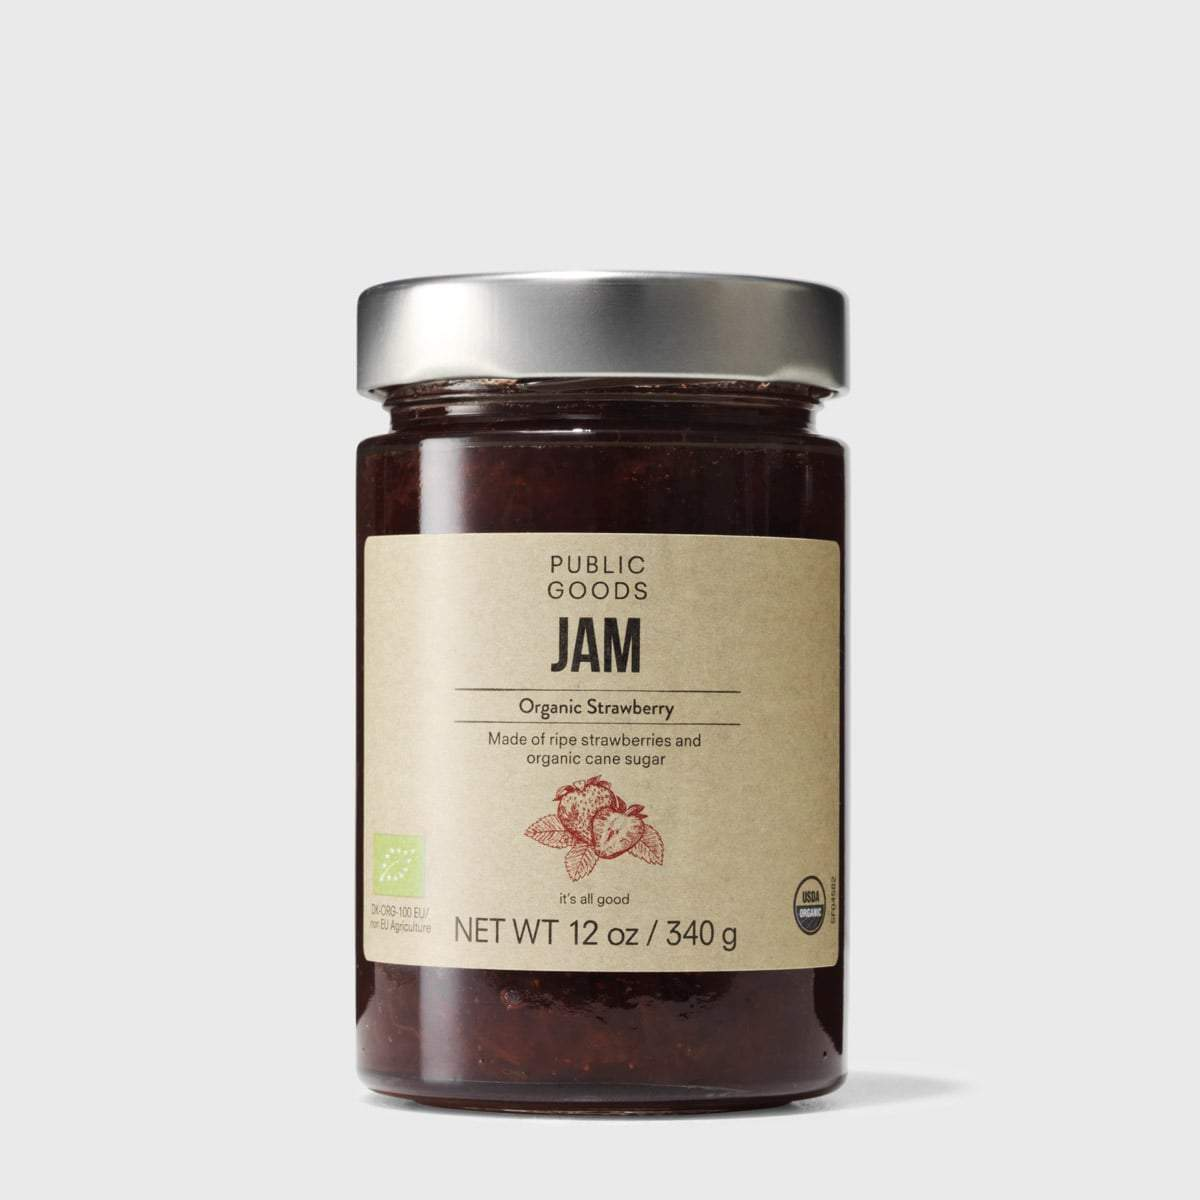 Public Goods Grocery Strawberry Jam